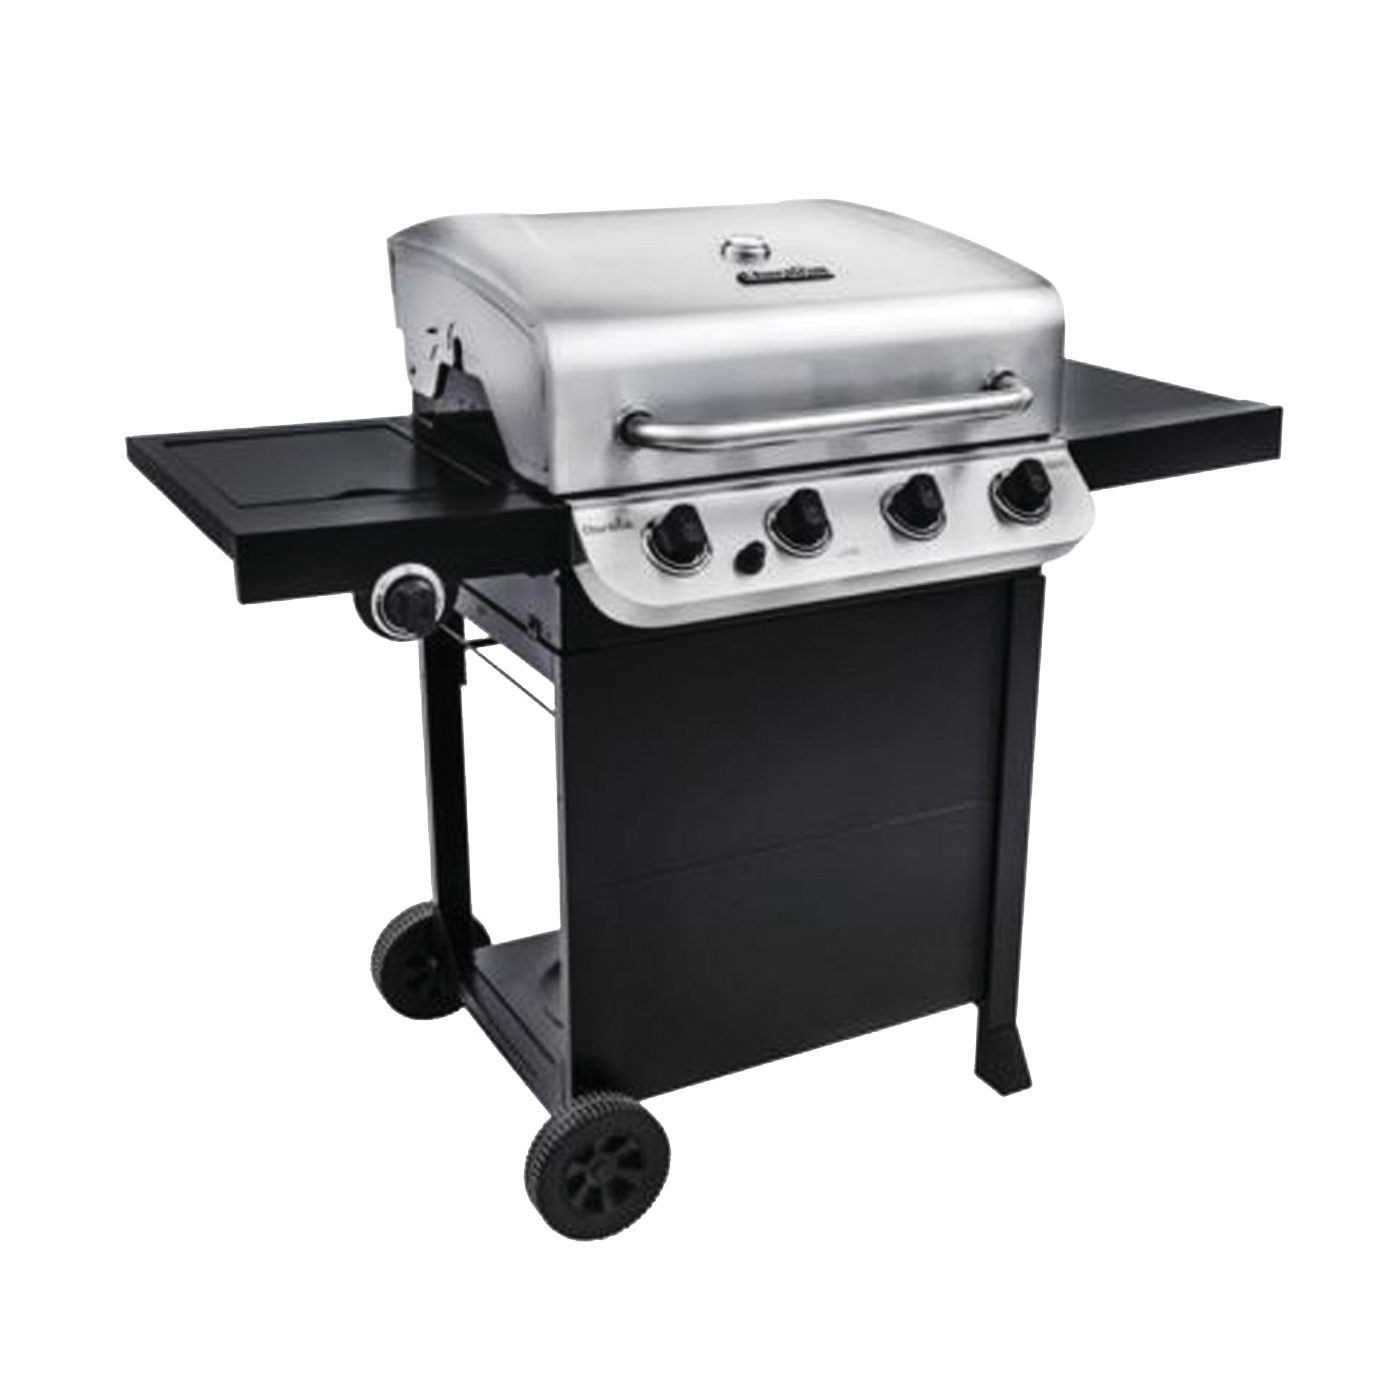 Picture of Char-Broil Performance Series 463376017 Gas Grill, 36000 Btu BTU, 4 -Burner, 475 sq-in Primary Cooking Surface